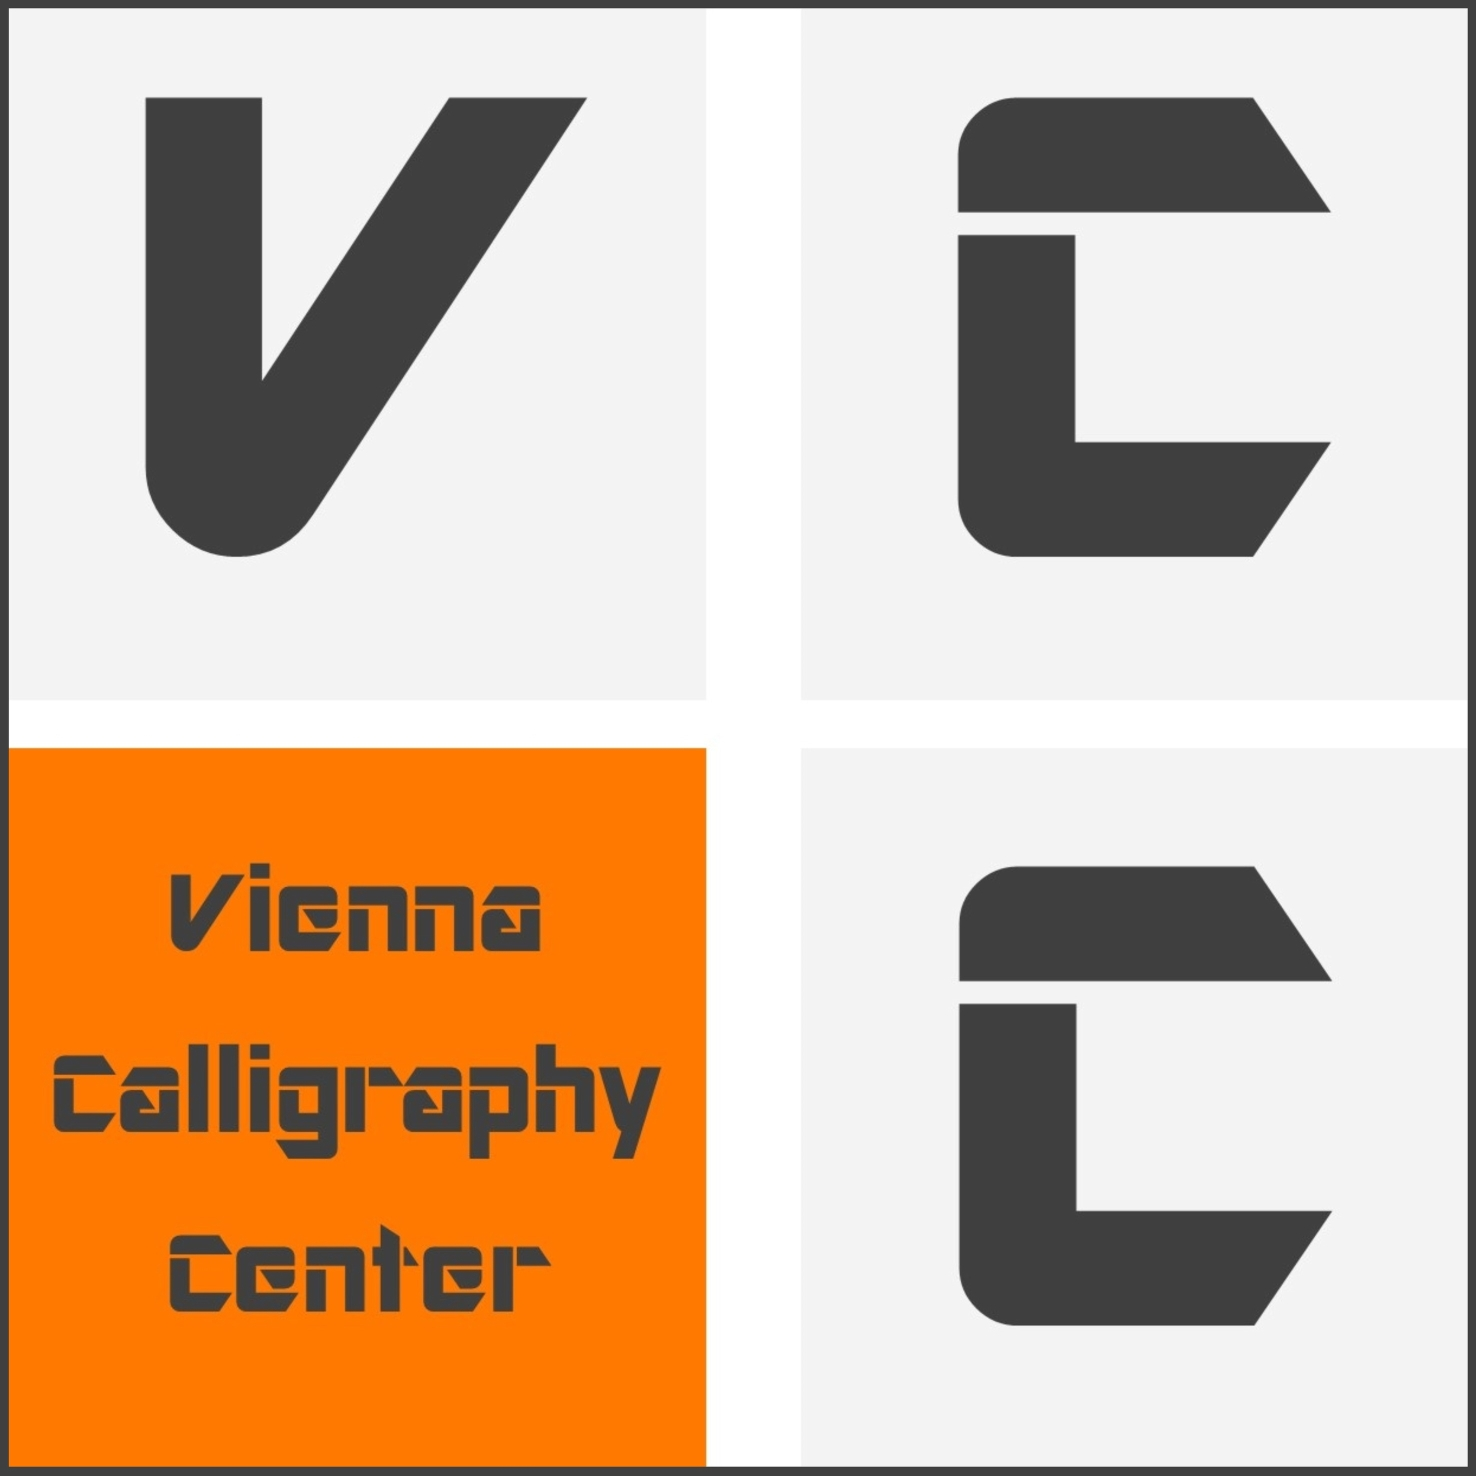 Vienna Calligraphy center logo